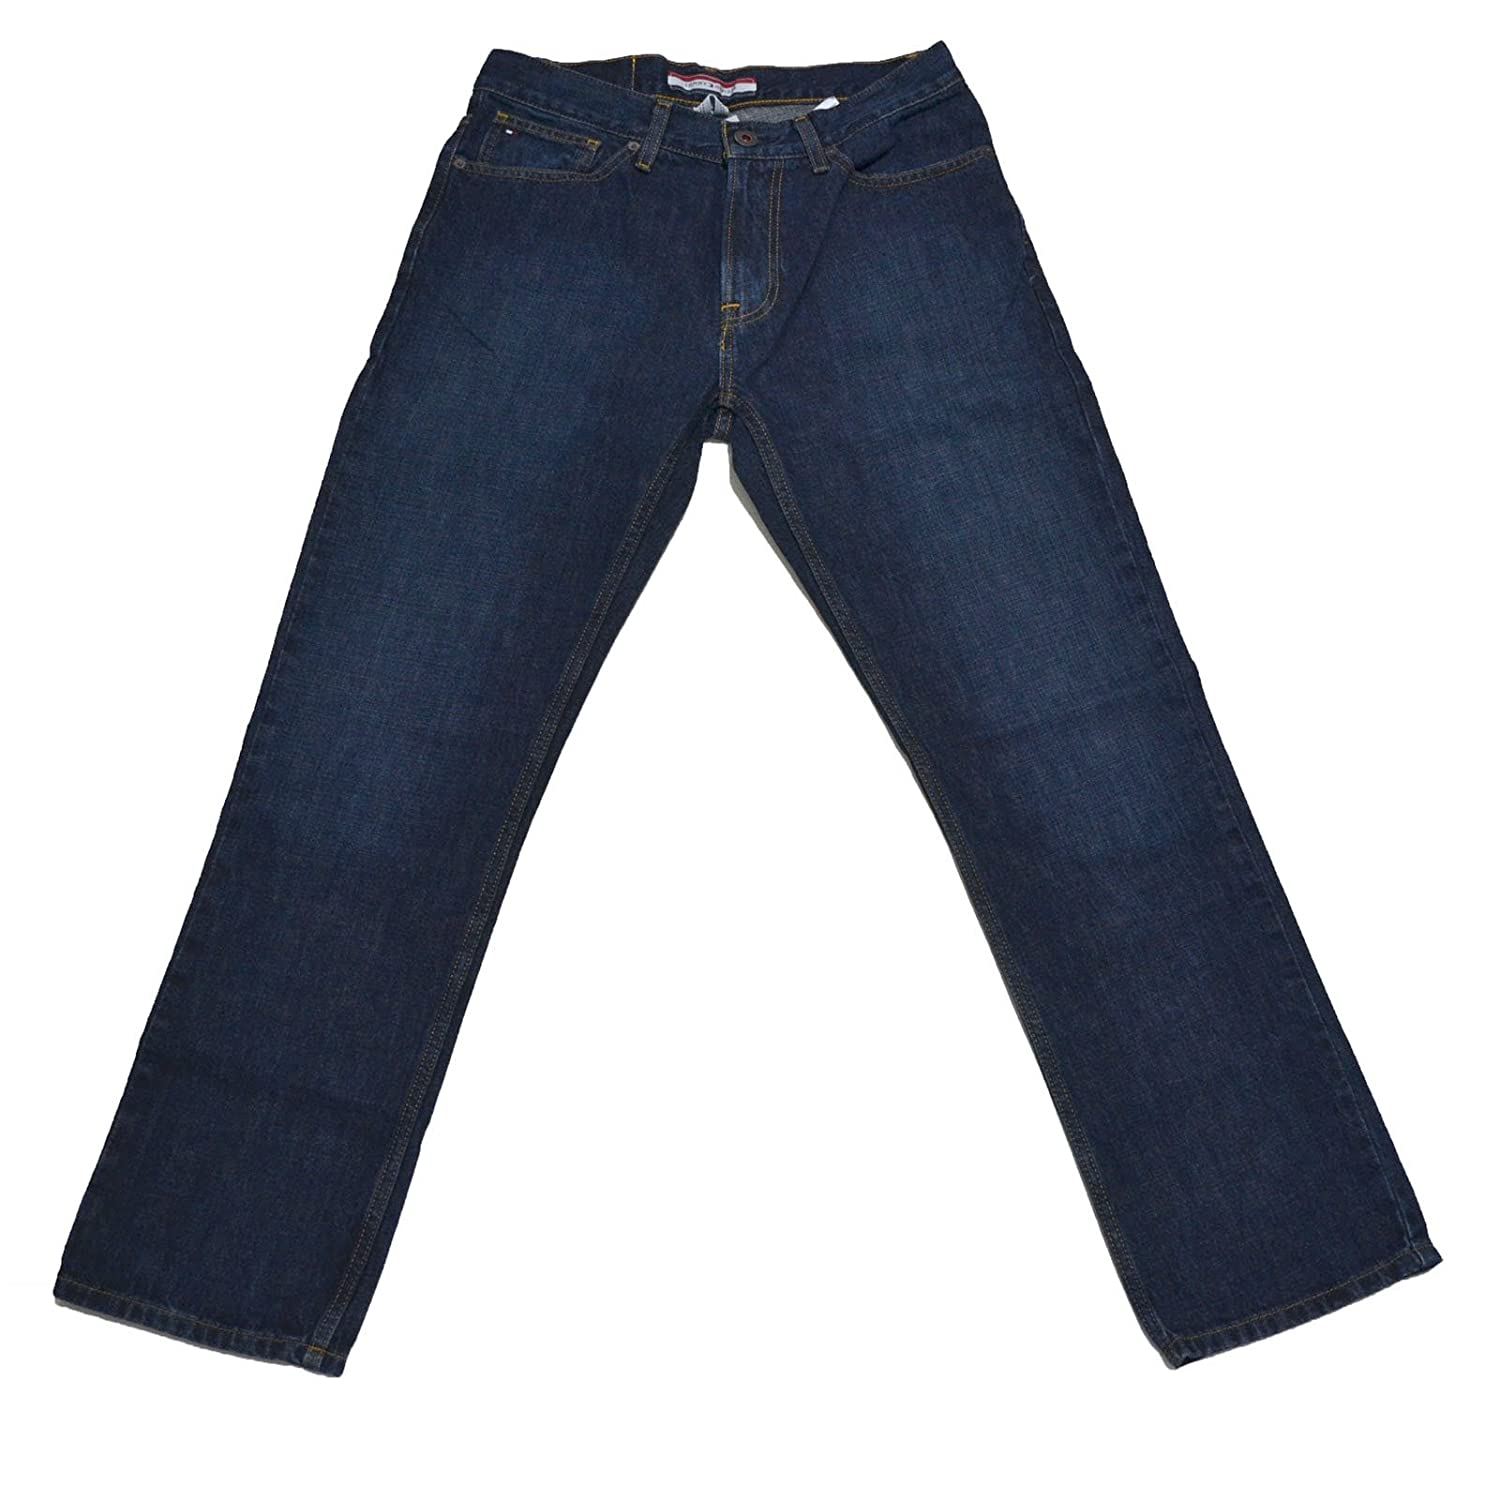 c014d46d17 lovely Tommy Hilfiger Mens Classic Fit Jeans - sms.md